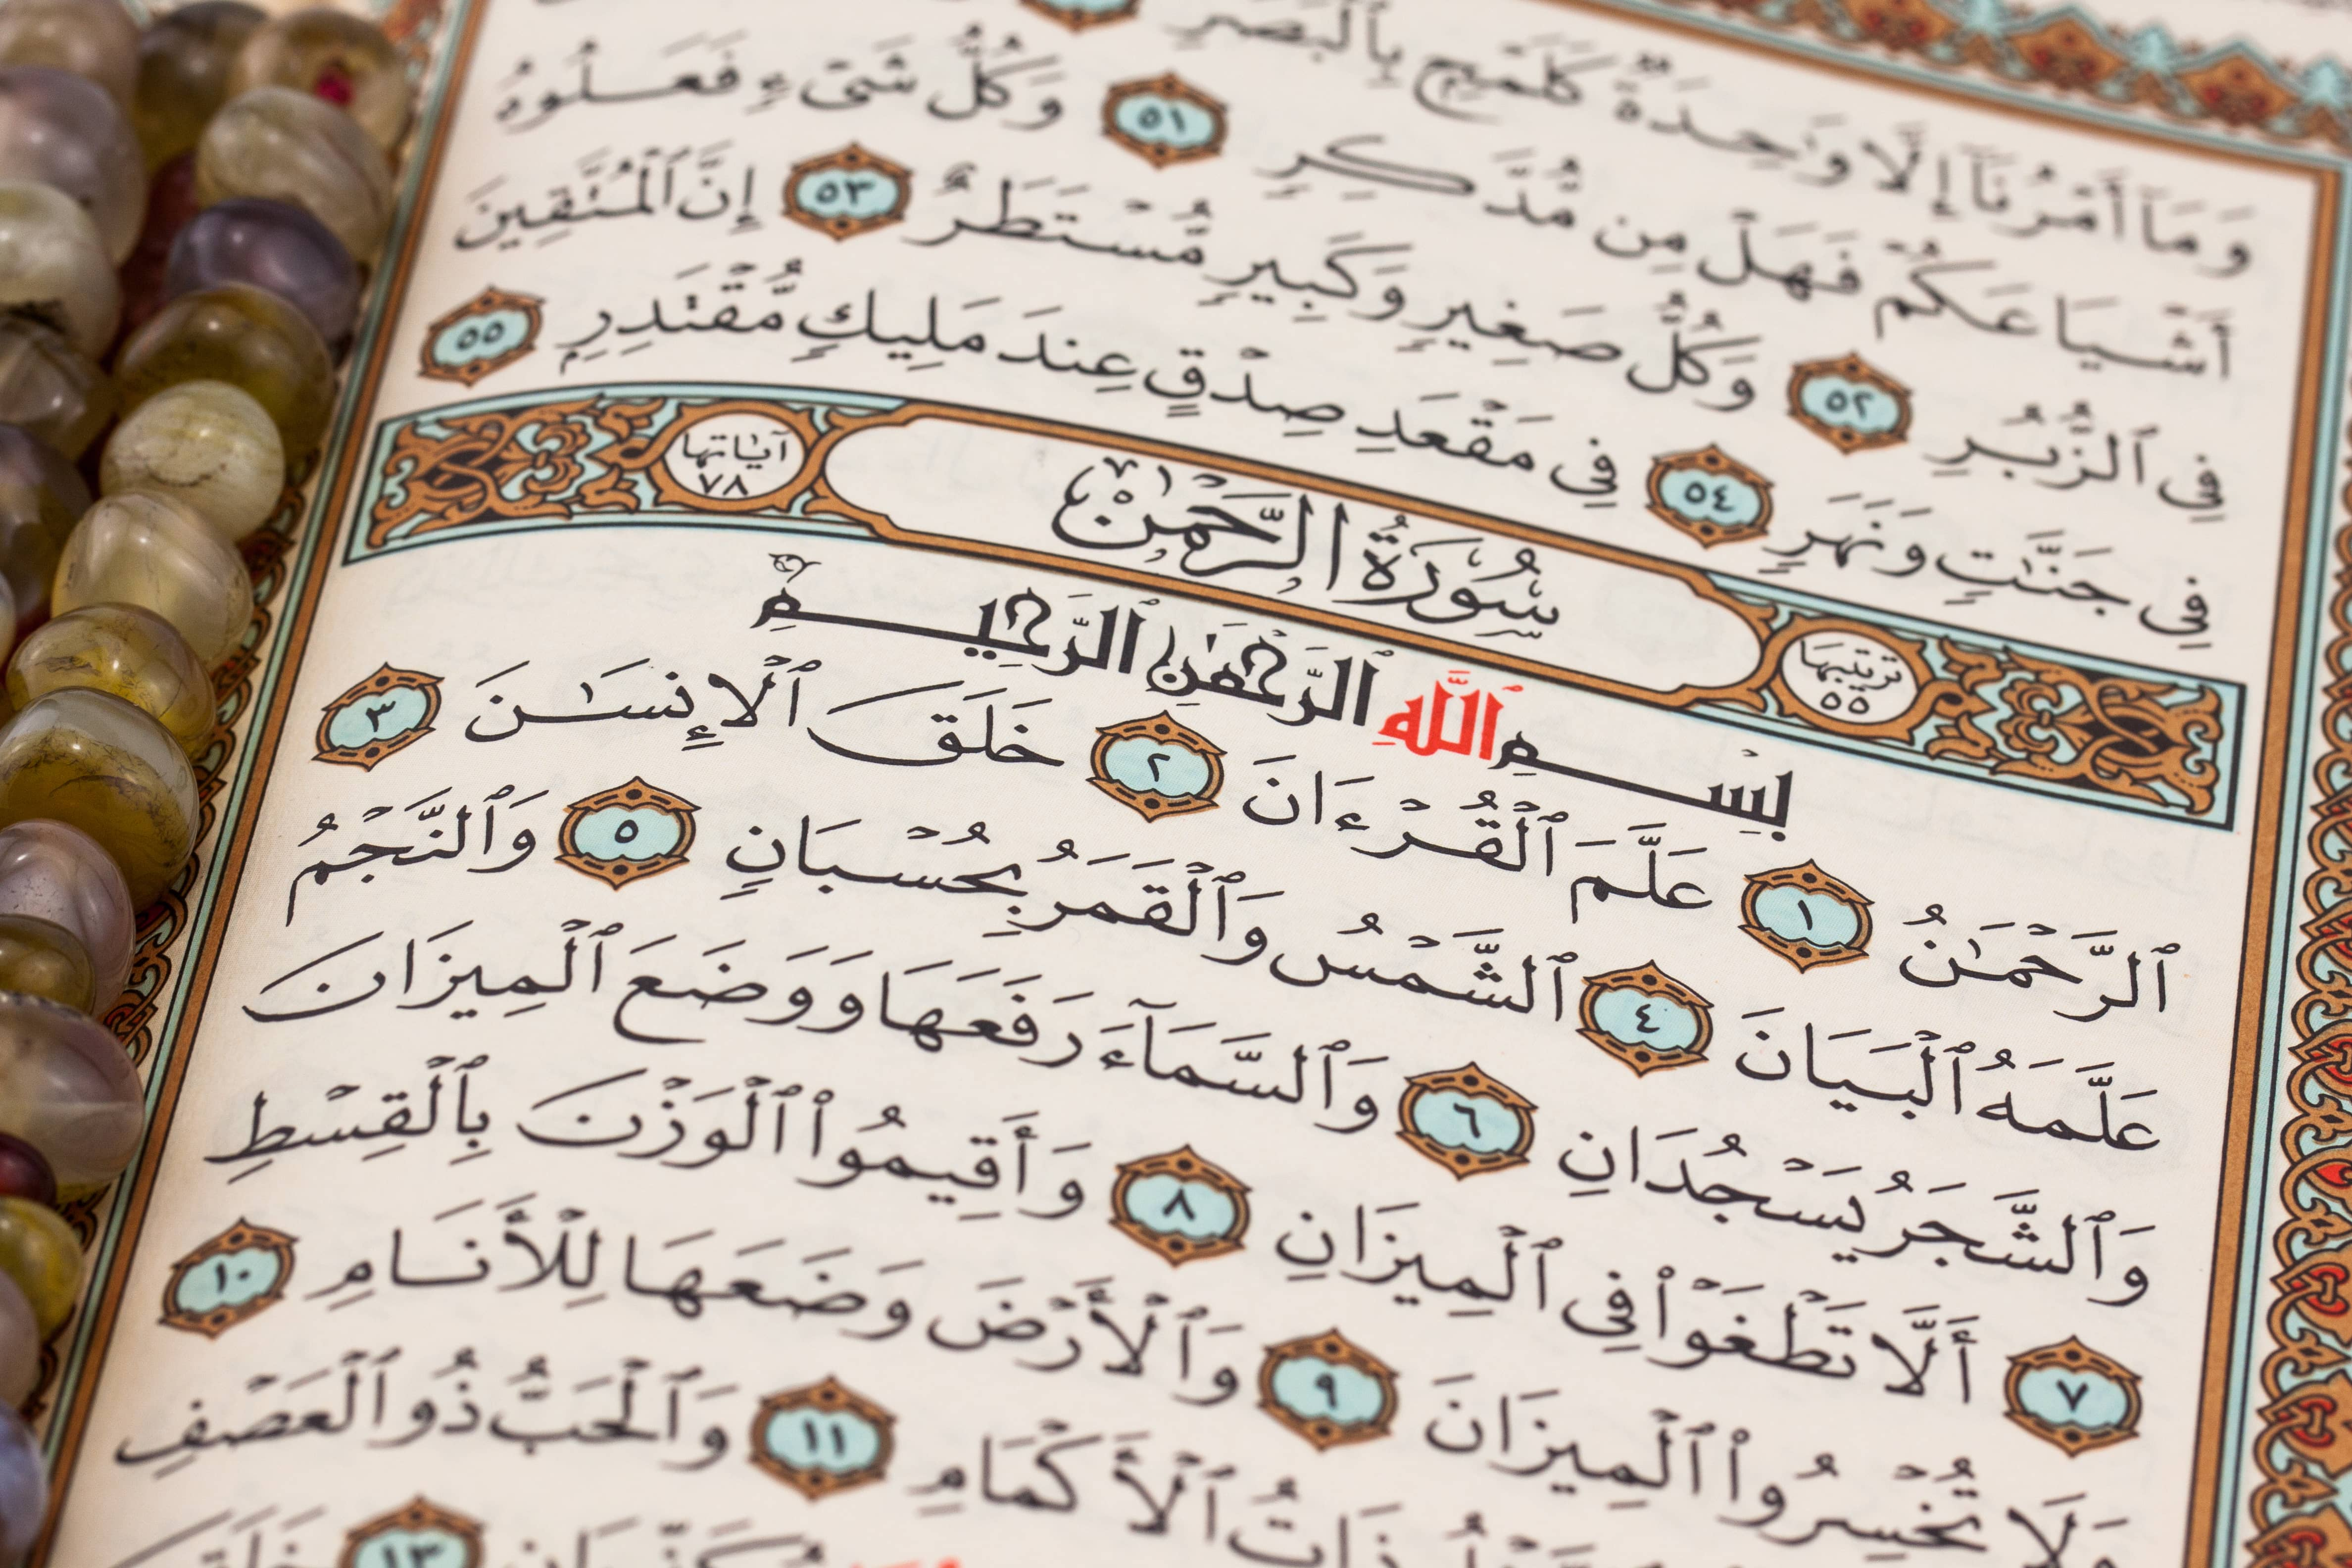 Photo of text in the Quran